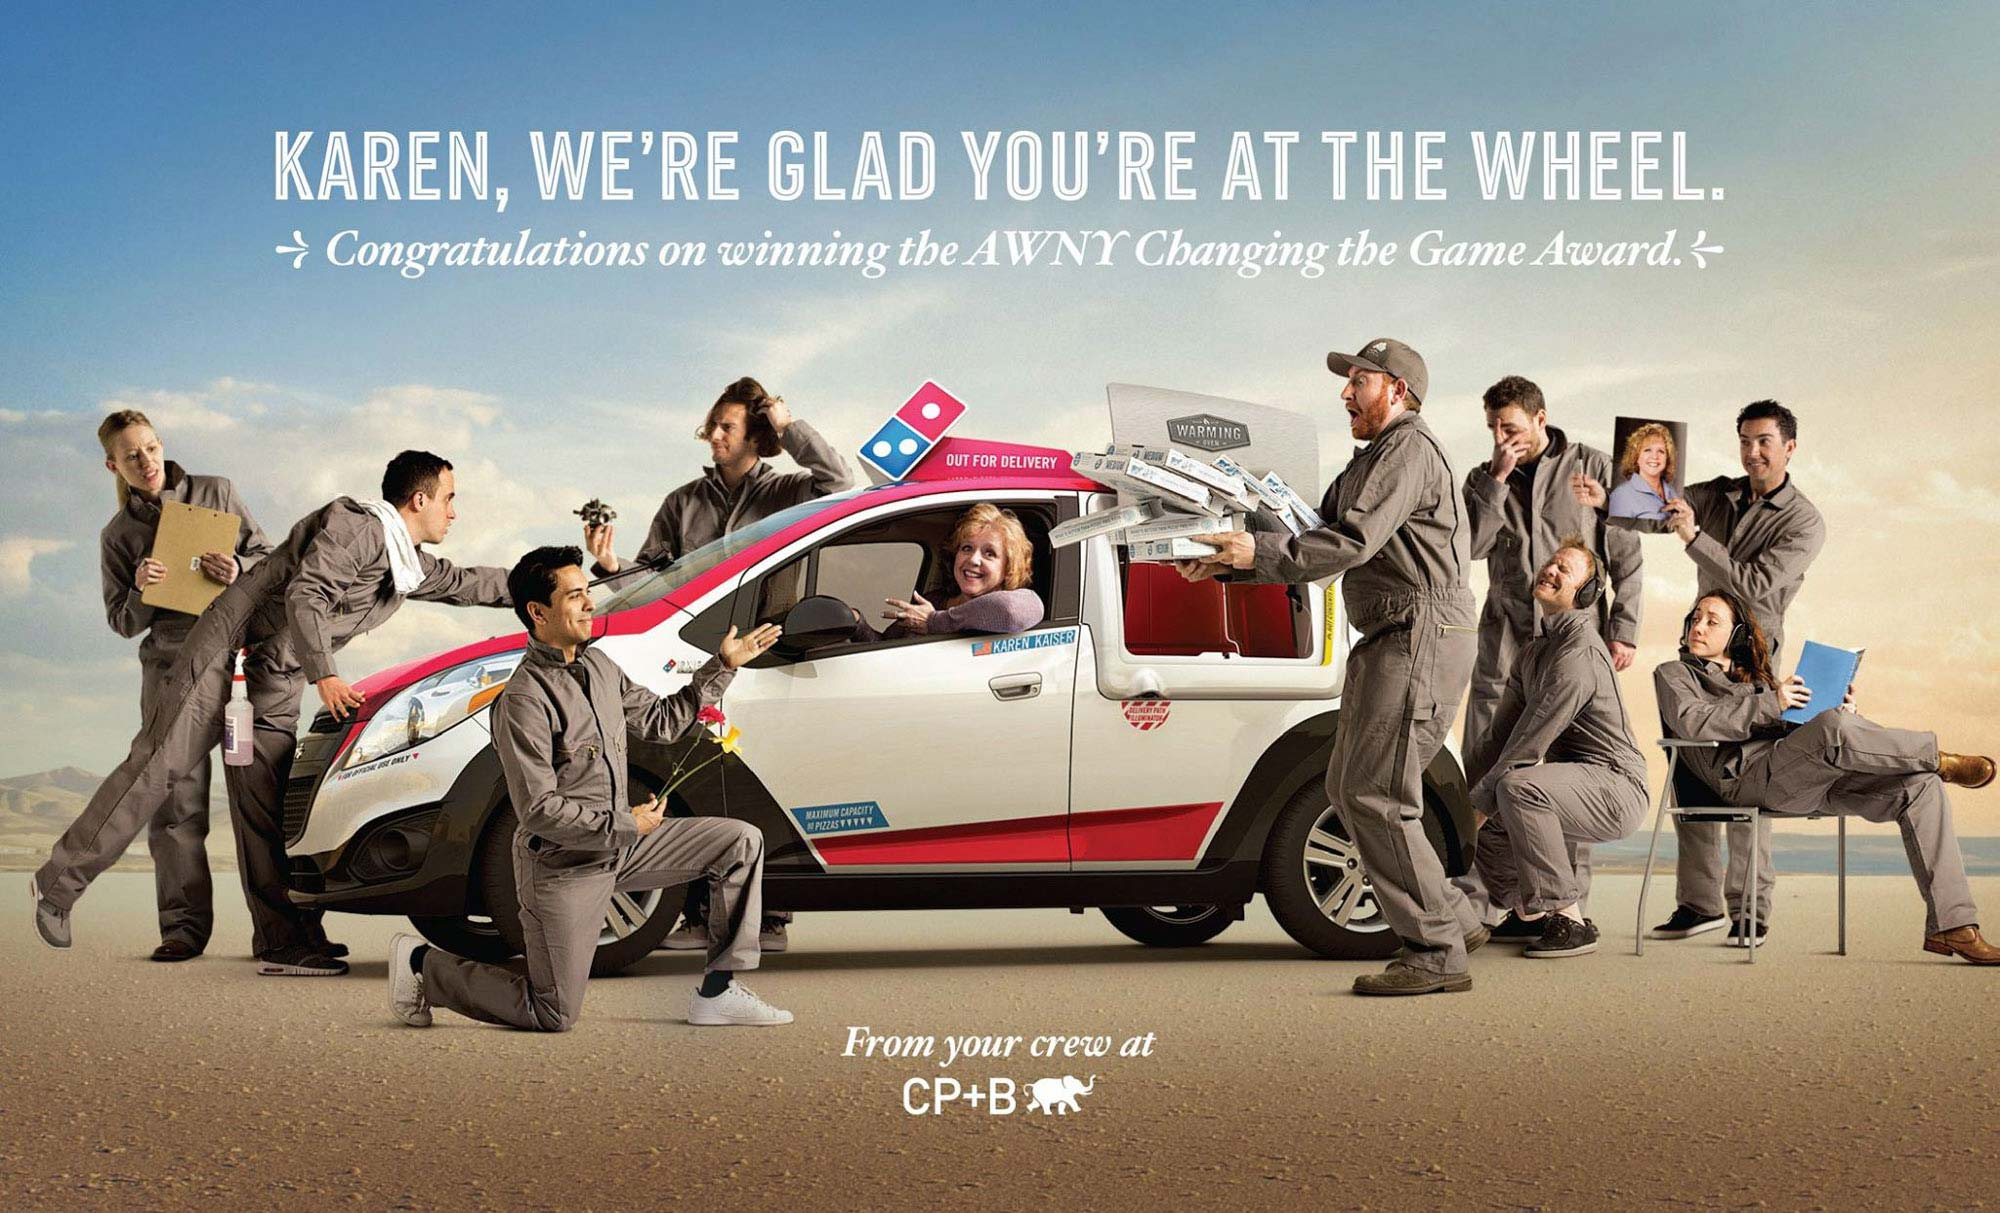 Domino's CMO Karen Kaiser in delivery car surrounded by CP+B creative team, fun silly photo, thank you award | Matt Talbot | Andrew Lincoln | Tony Calcao | Marthon Pucci | Maria Snell | Brian Caruso | Alex Guerri | Sean Wright | Brittany Tangsrud | Shot i